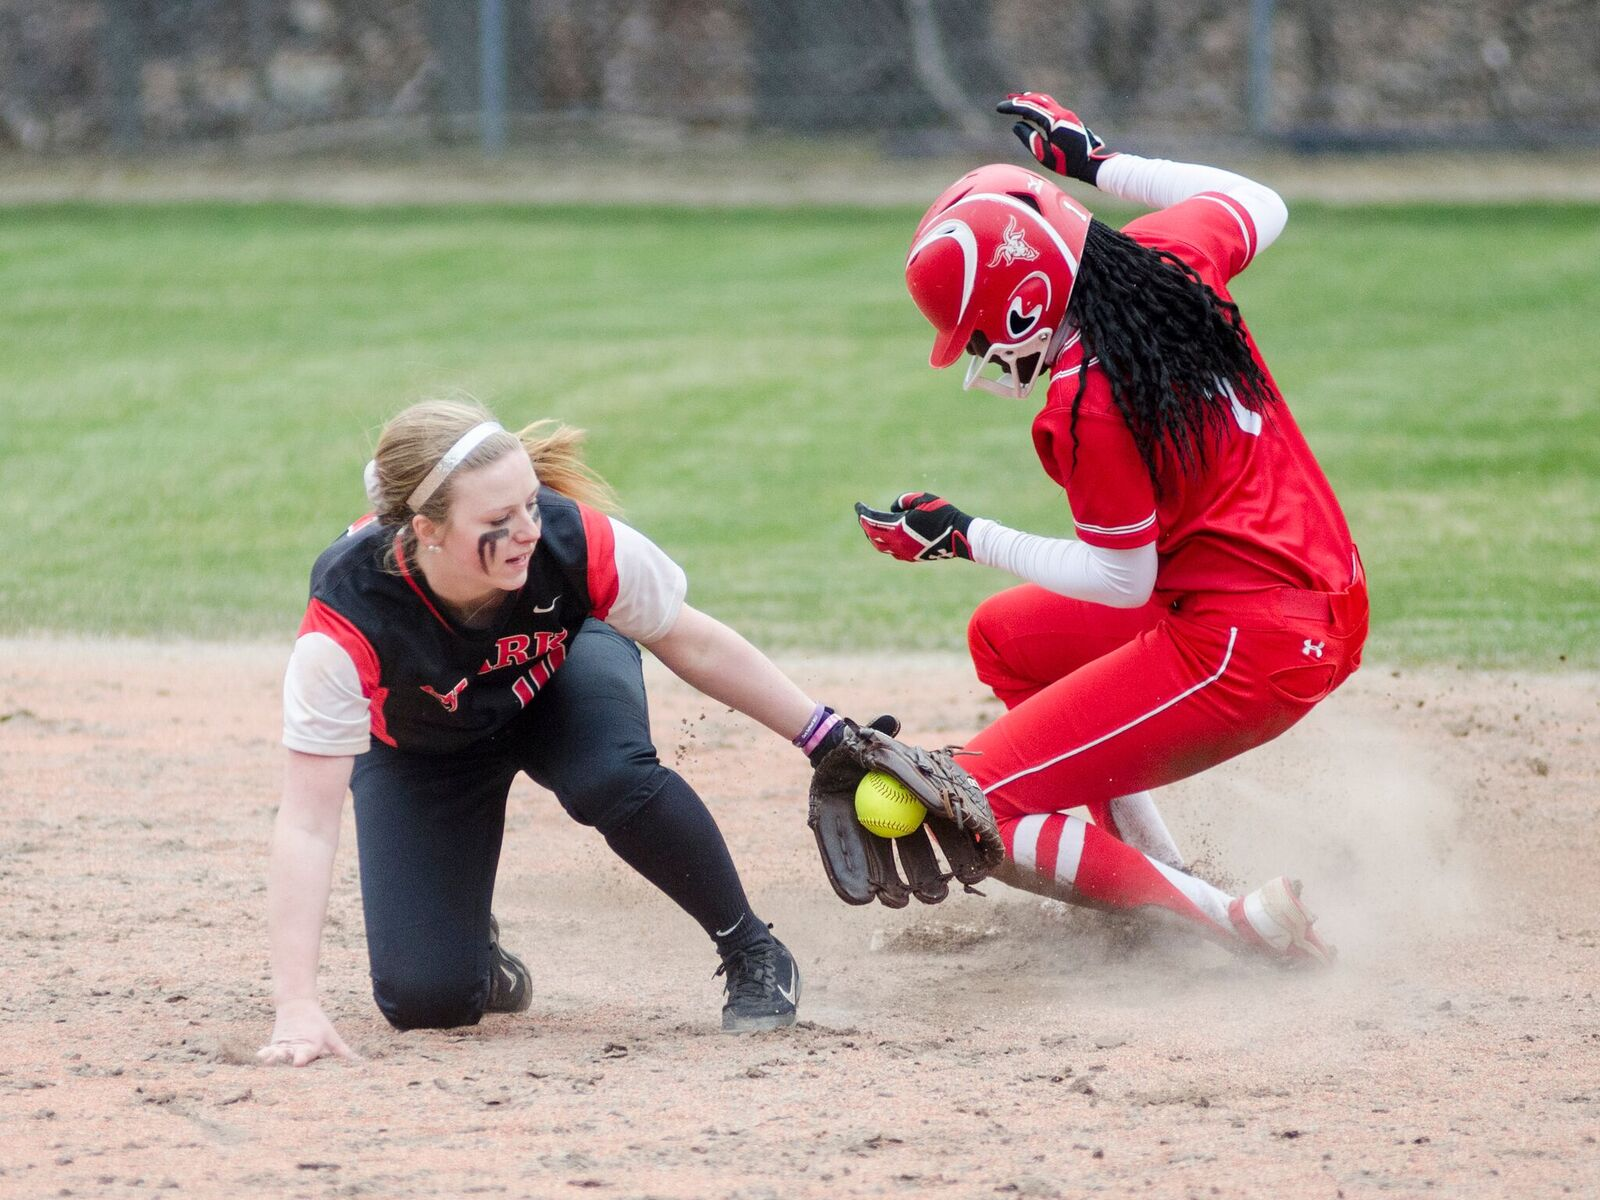 Springfield Sweeps Softball in NEWMAC Doubleheader